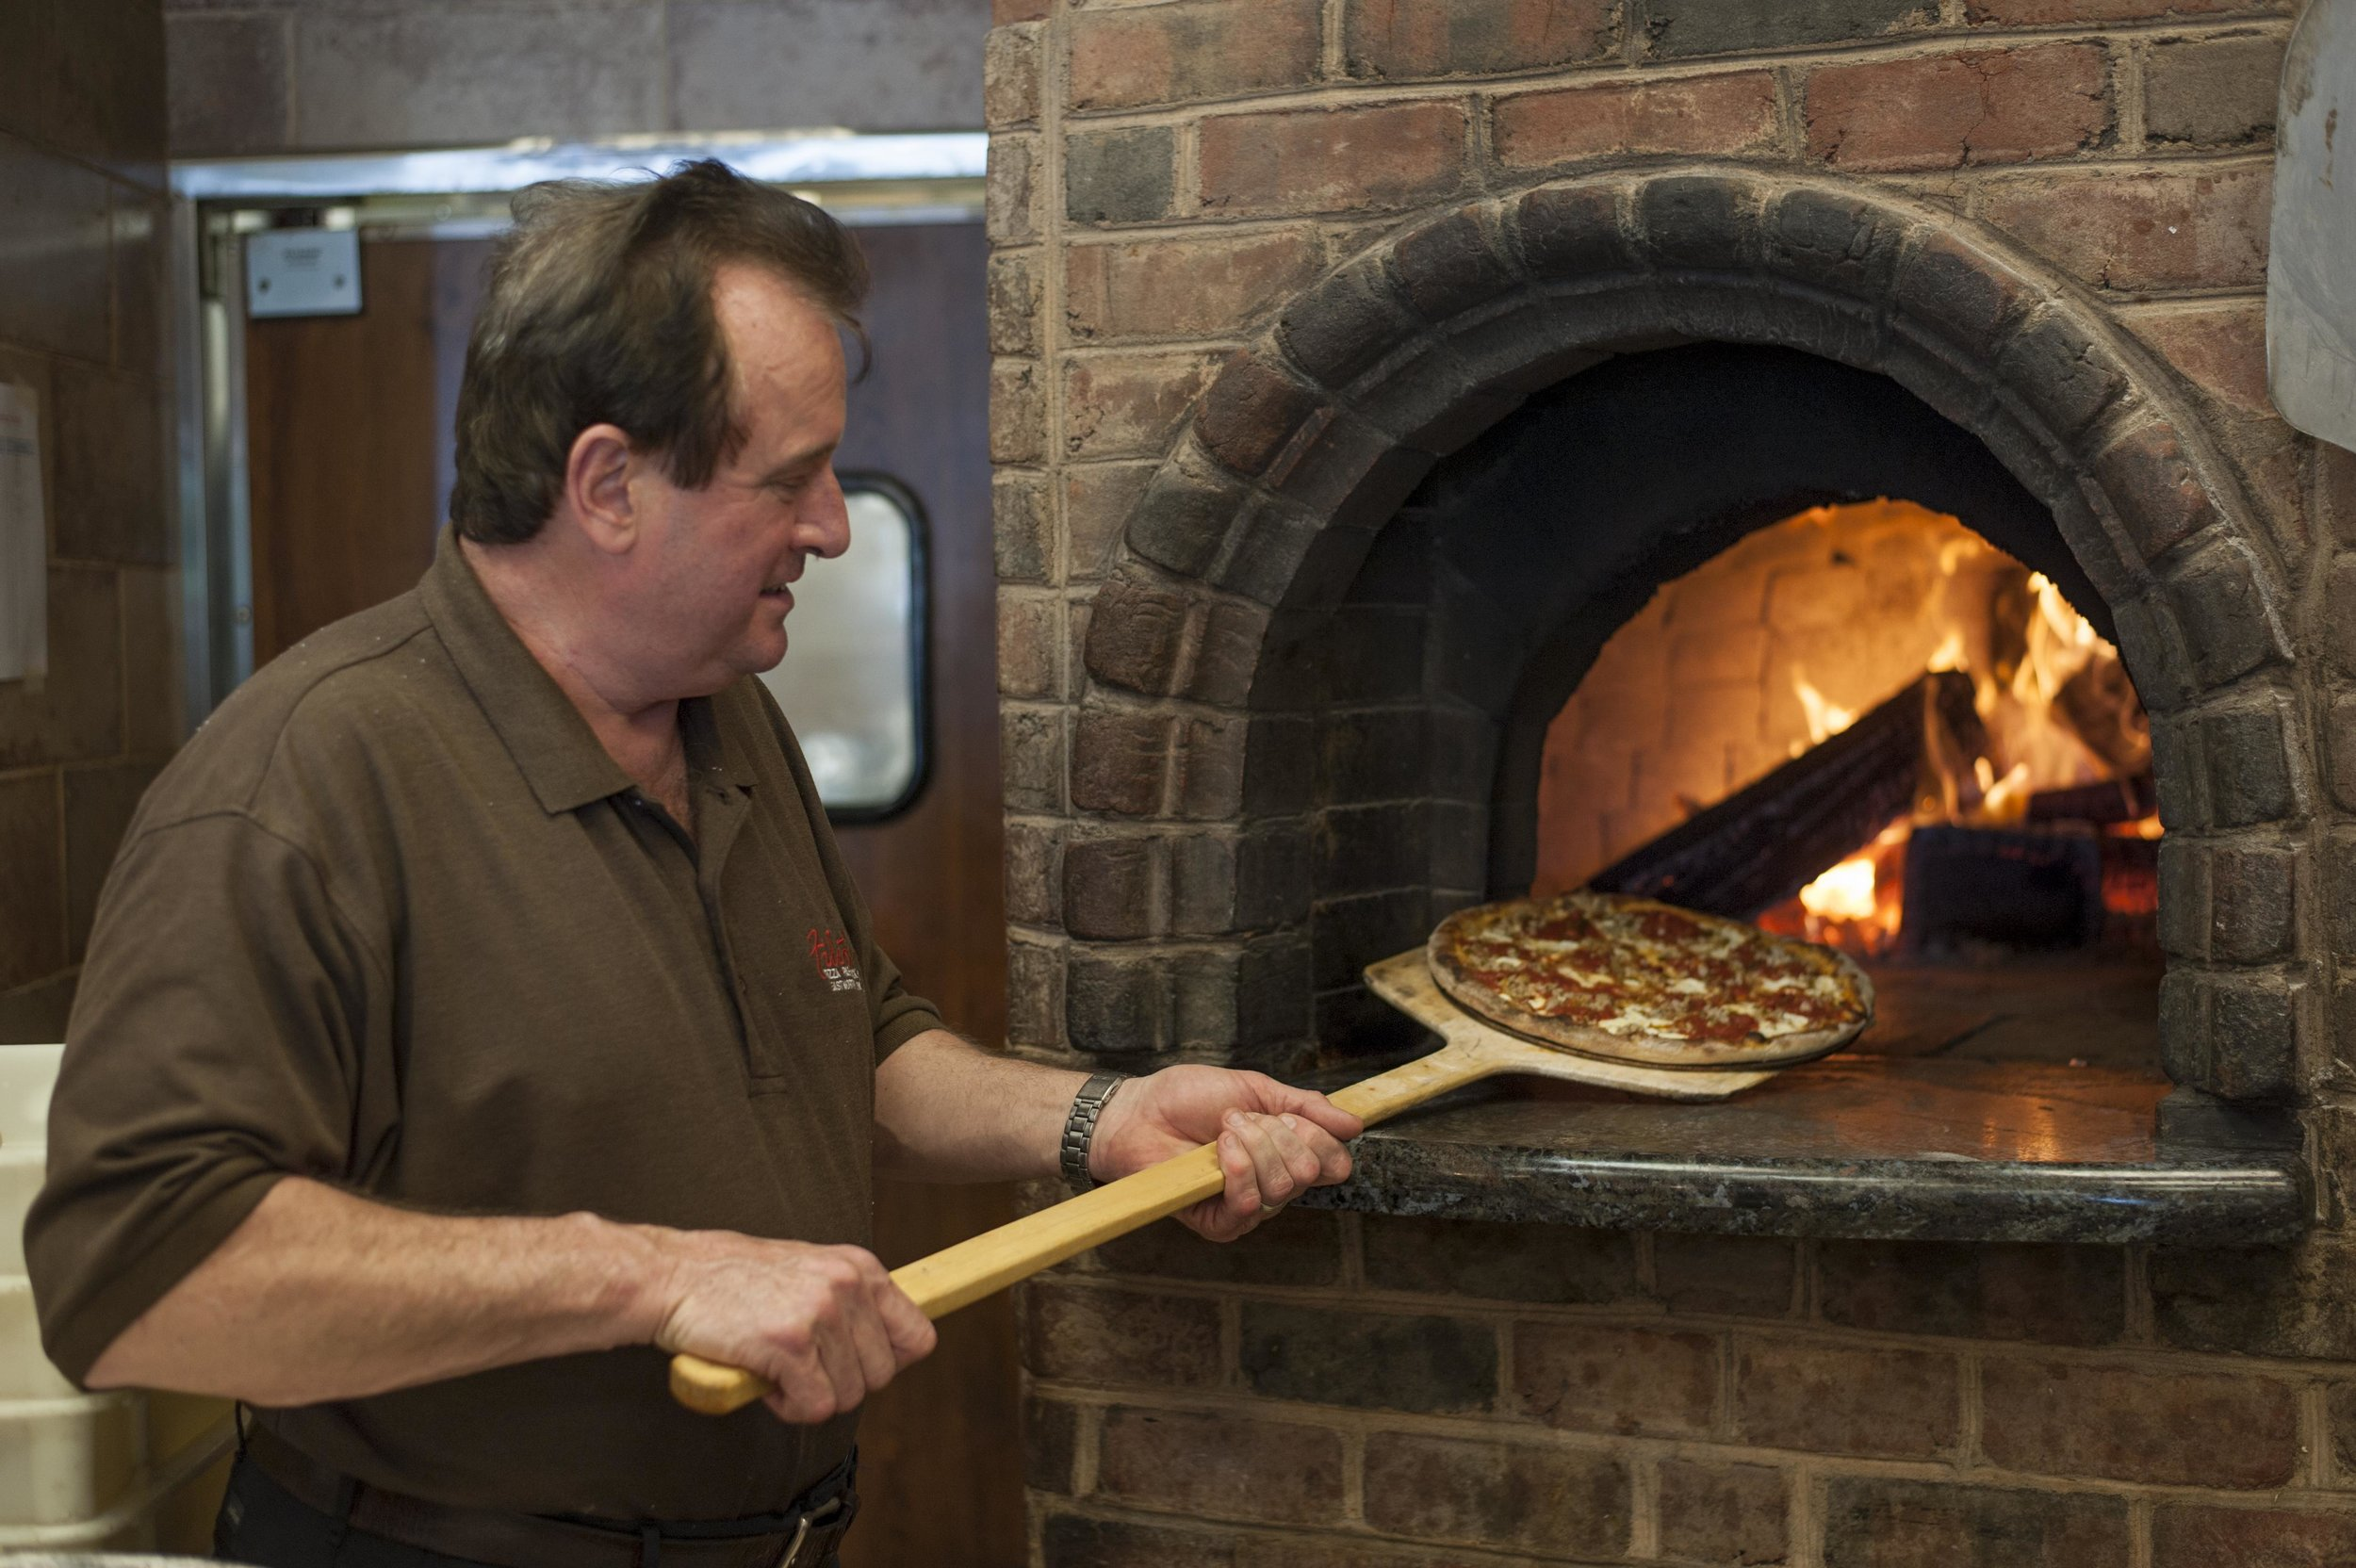 Long Islander News photos/David Weber  Rich Braue, co-owner of Filetto's ristorante and head chef with more than 40 years of culinary expertise, puts in a pizza into the establishment's renowned brick oven.